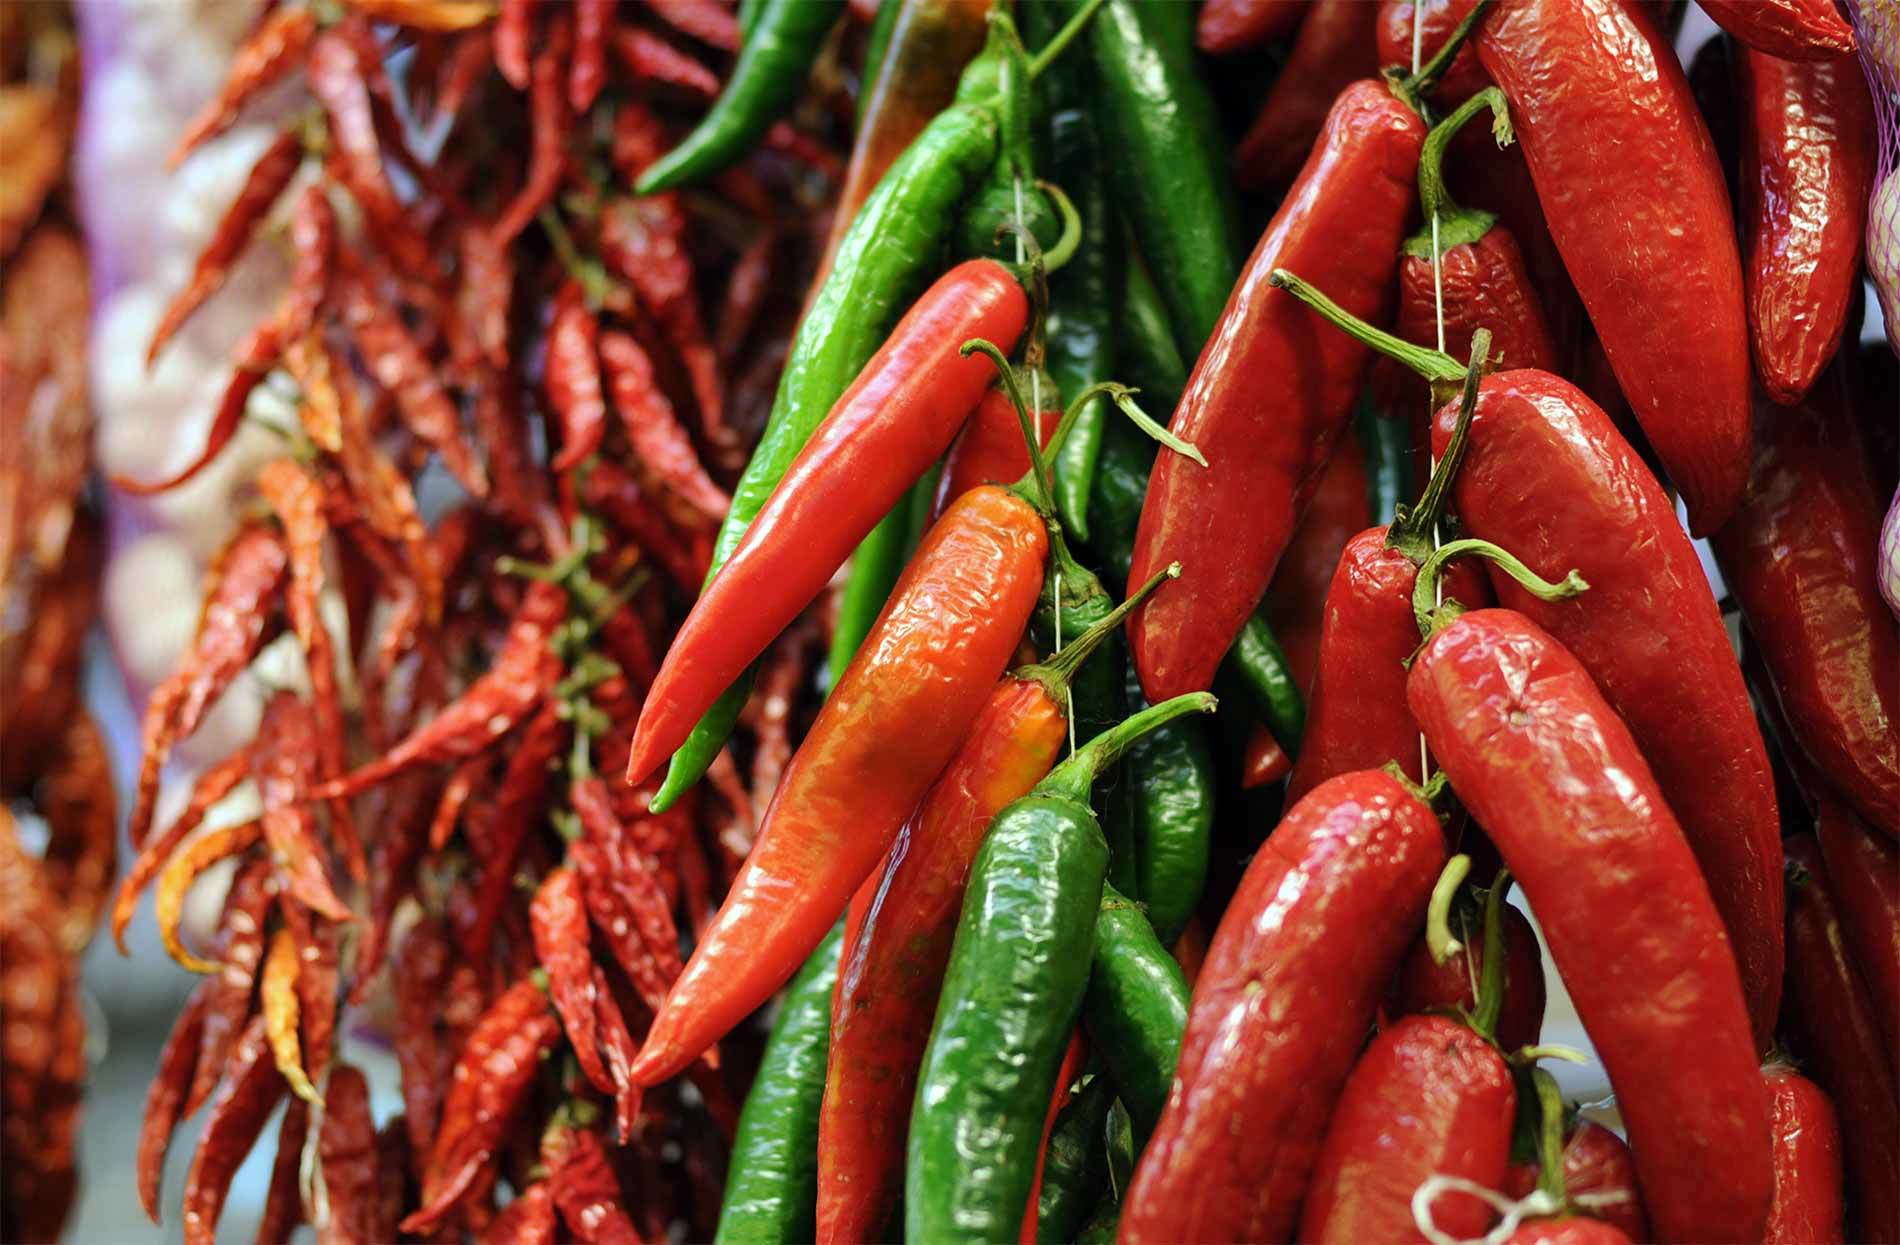 Chilies Market 2